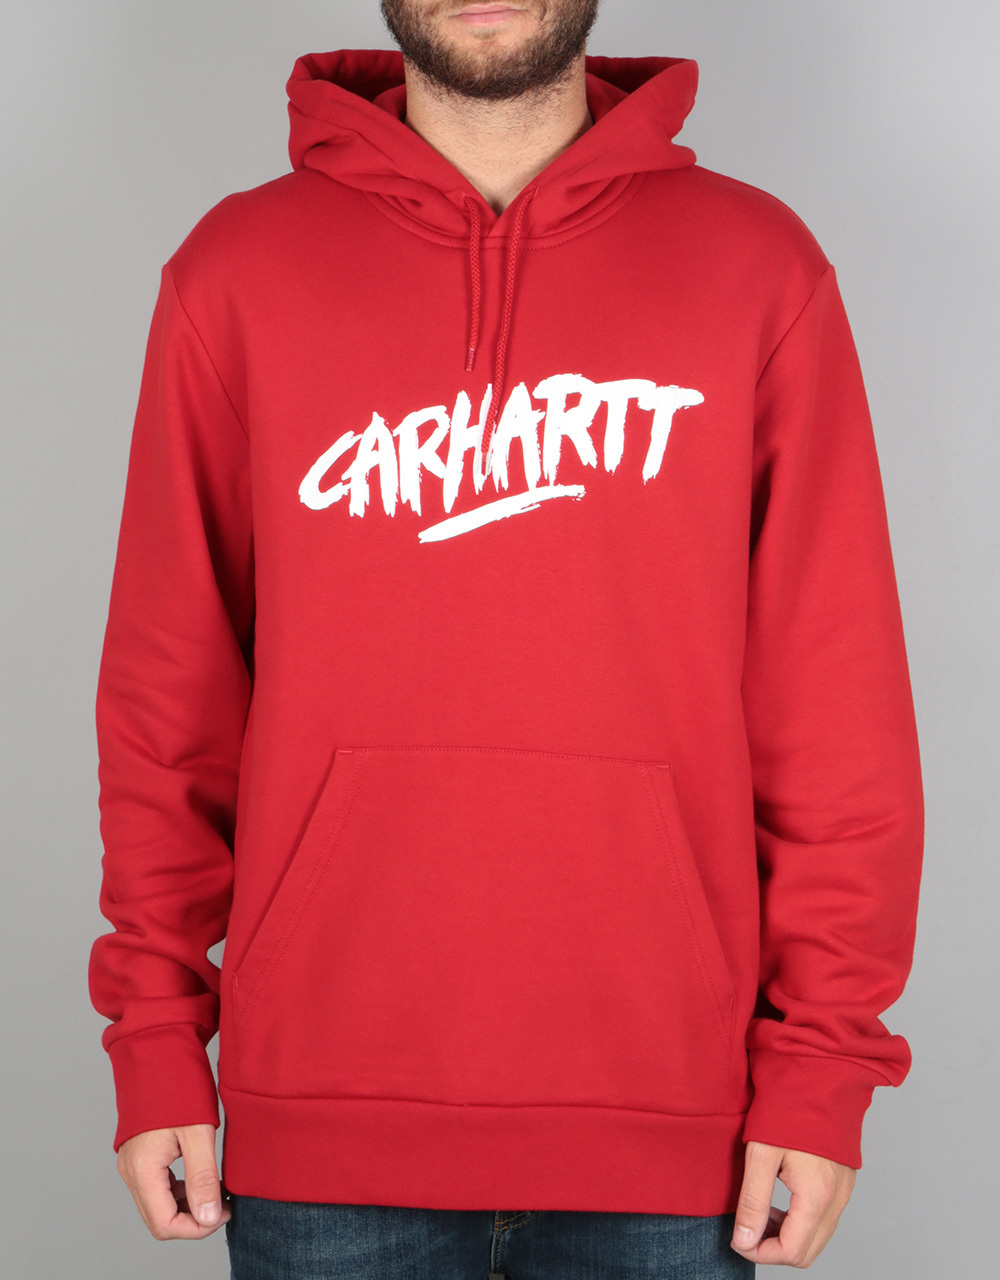 carhartt hooded painted script sweatshirt rosehip white skate pullover hoodies mens. Black Bedroom Furniture Sets. Home Design Ideas